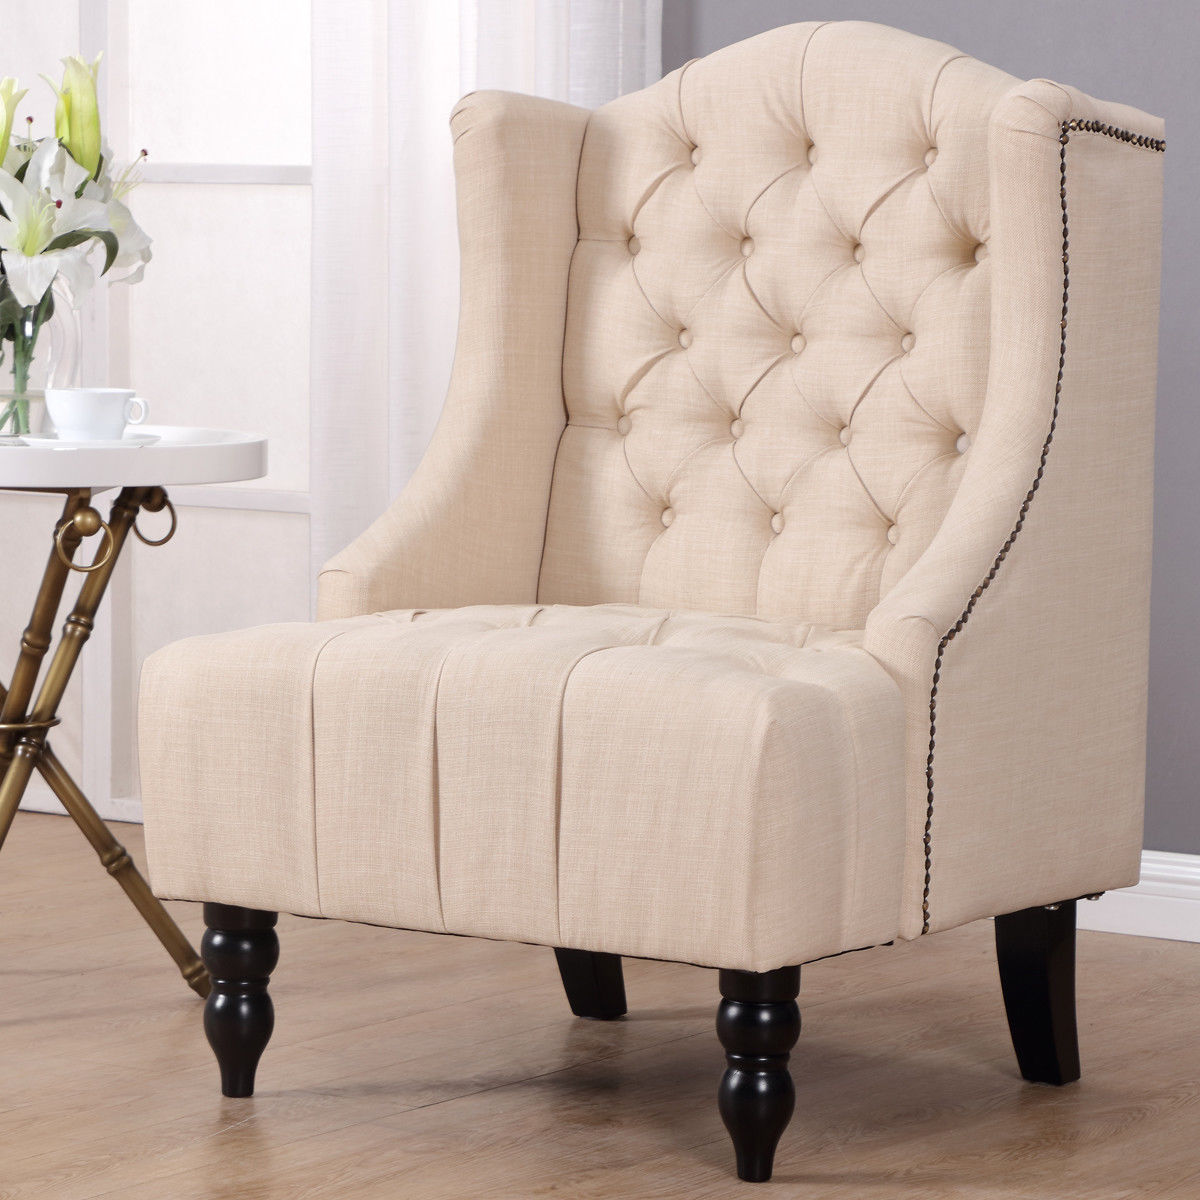 Costway Modern Tall Wingback Tufted Accent Armchair Fabric Vintage Chair Nailhead Beige & Beige Accent Chairs - Walmart.com